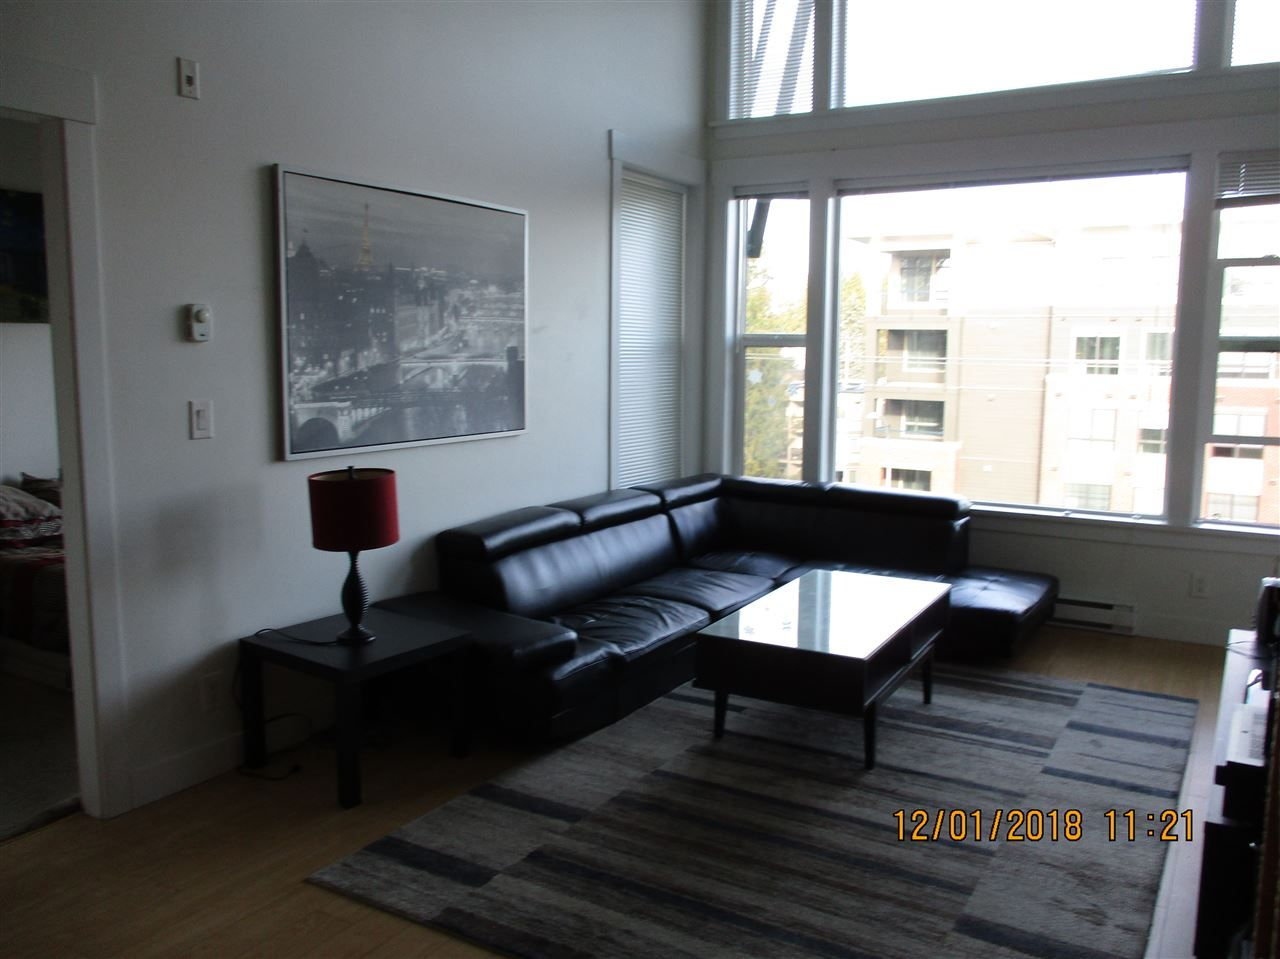 """Photo 7: Photos: 409 33538 MARSHALL Road in Abbotsford: Central Abbotsford Condo for sale in """"THE CROSSING"""" : MLS®# R2326134"""